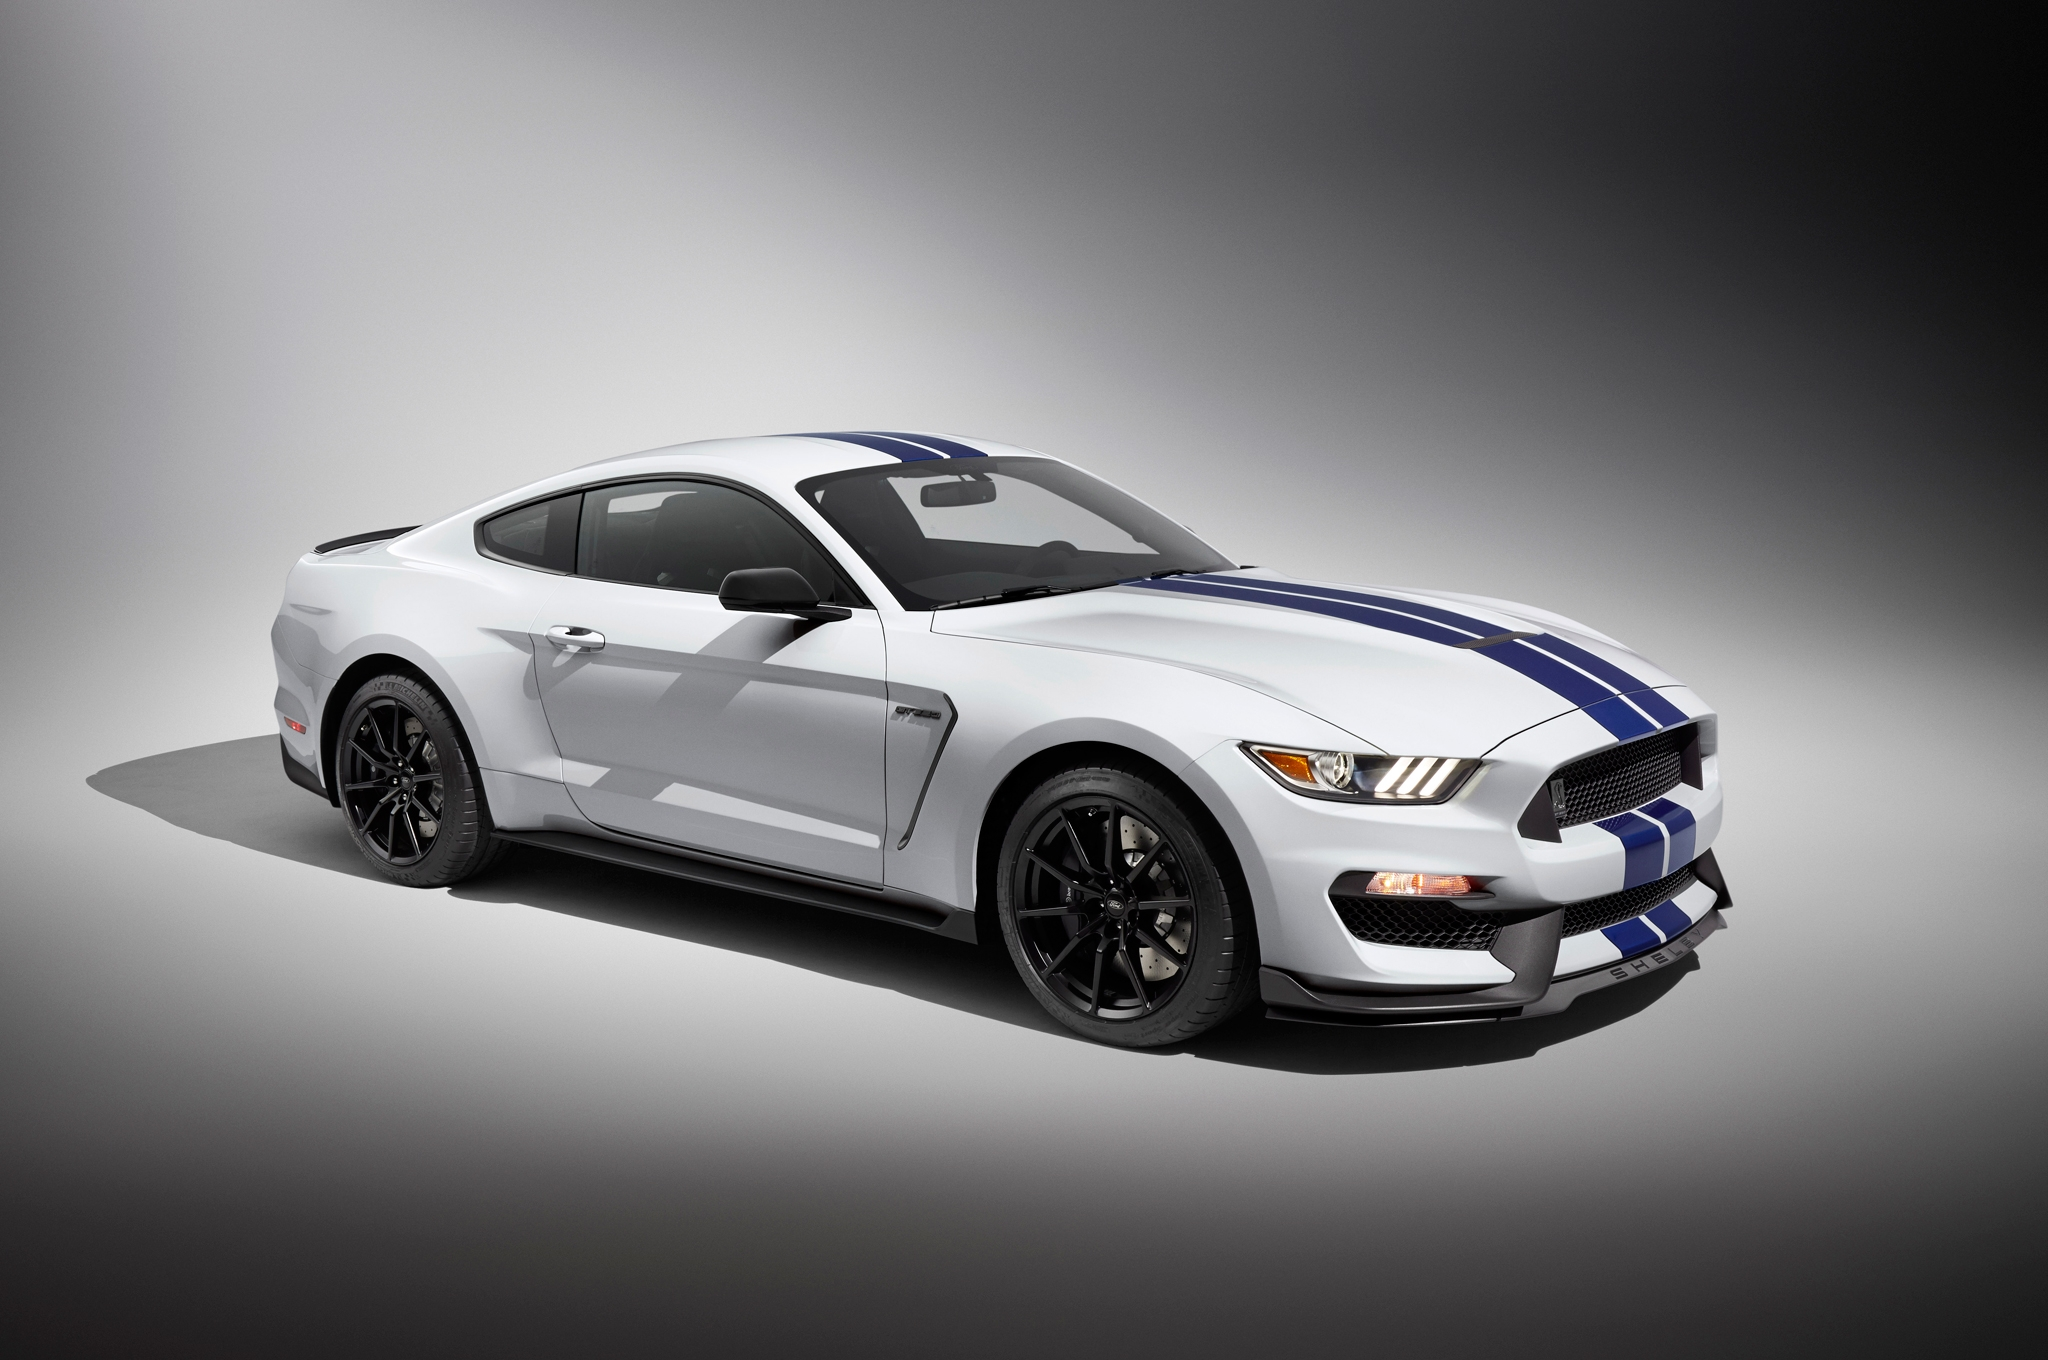 2016 Ford Mustang Shelby GT350 HD Wallpapers 2048x1360